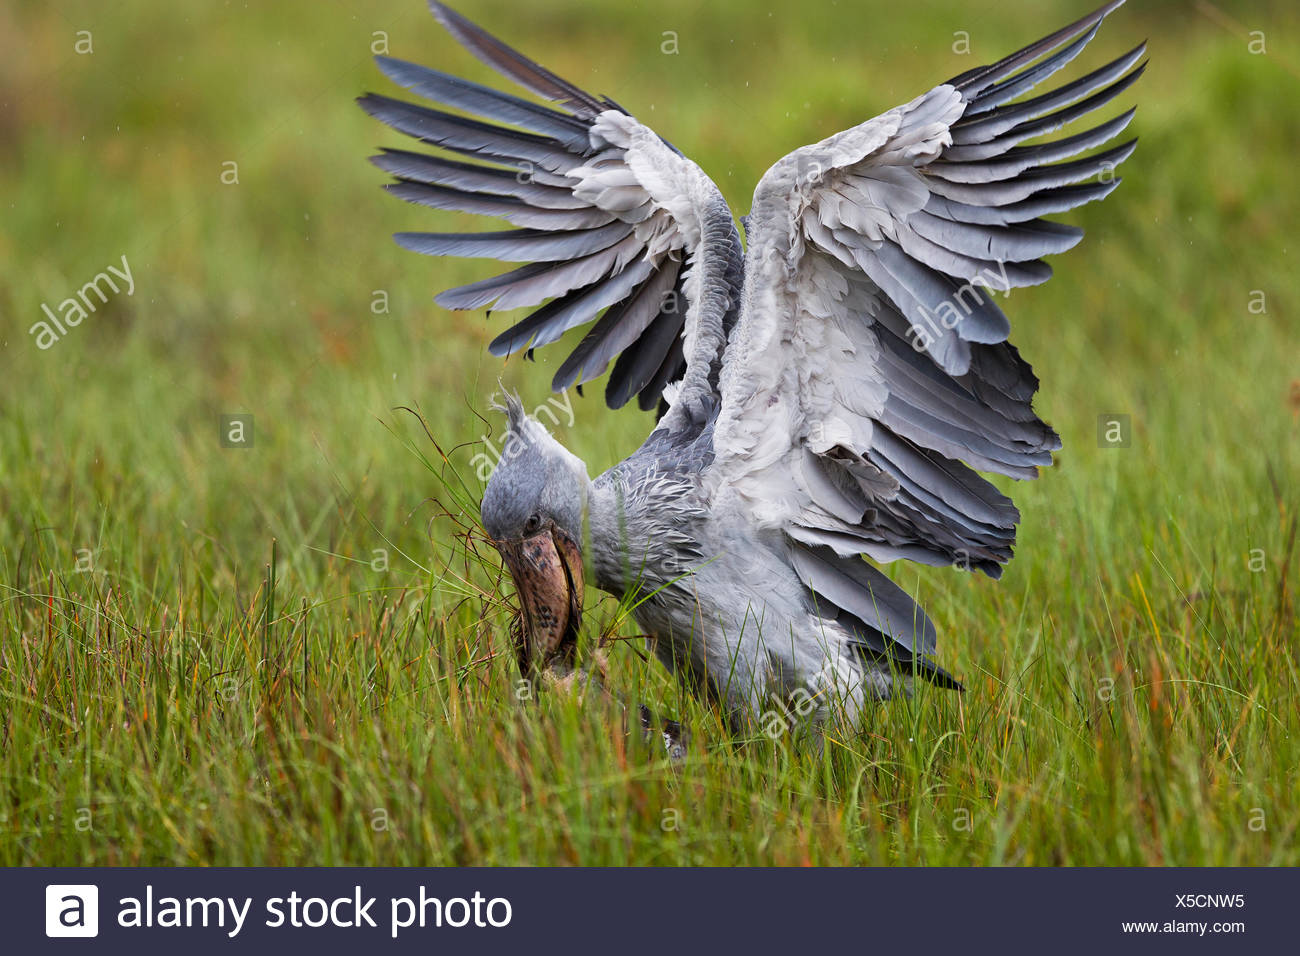 Whale headed / Shoebill stork (Balaeniceps rex) catching a Lungfish (Protoperus sp) in the swamps of Mabamba, Lake Victoria, Uganda   / Bec en sabot, dipneuste, Lac Victoria, Ouganda - Stock Image